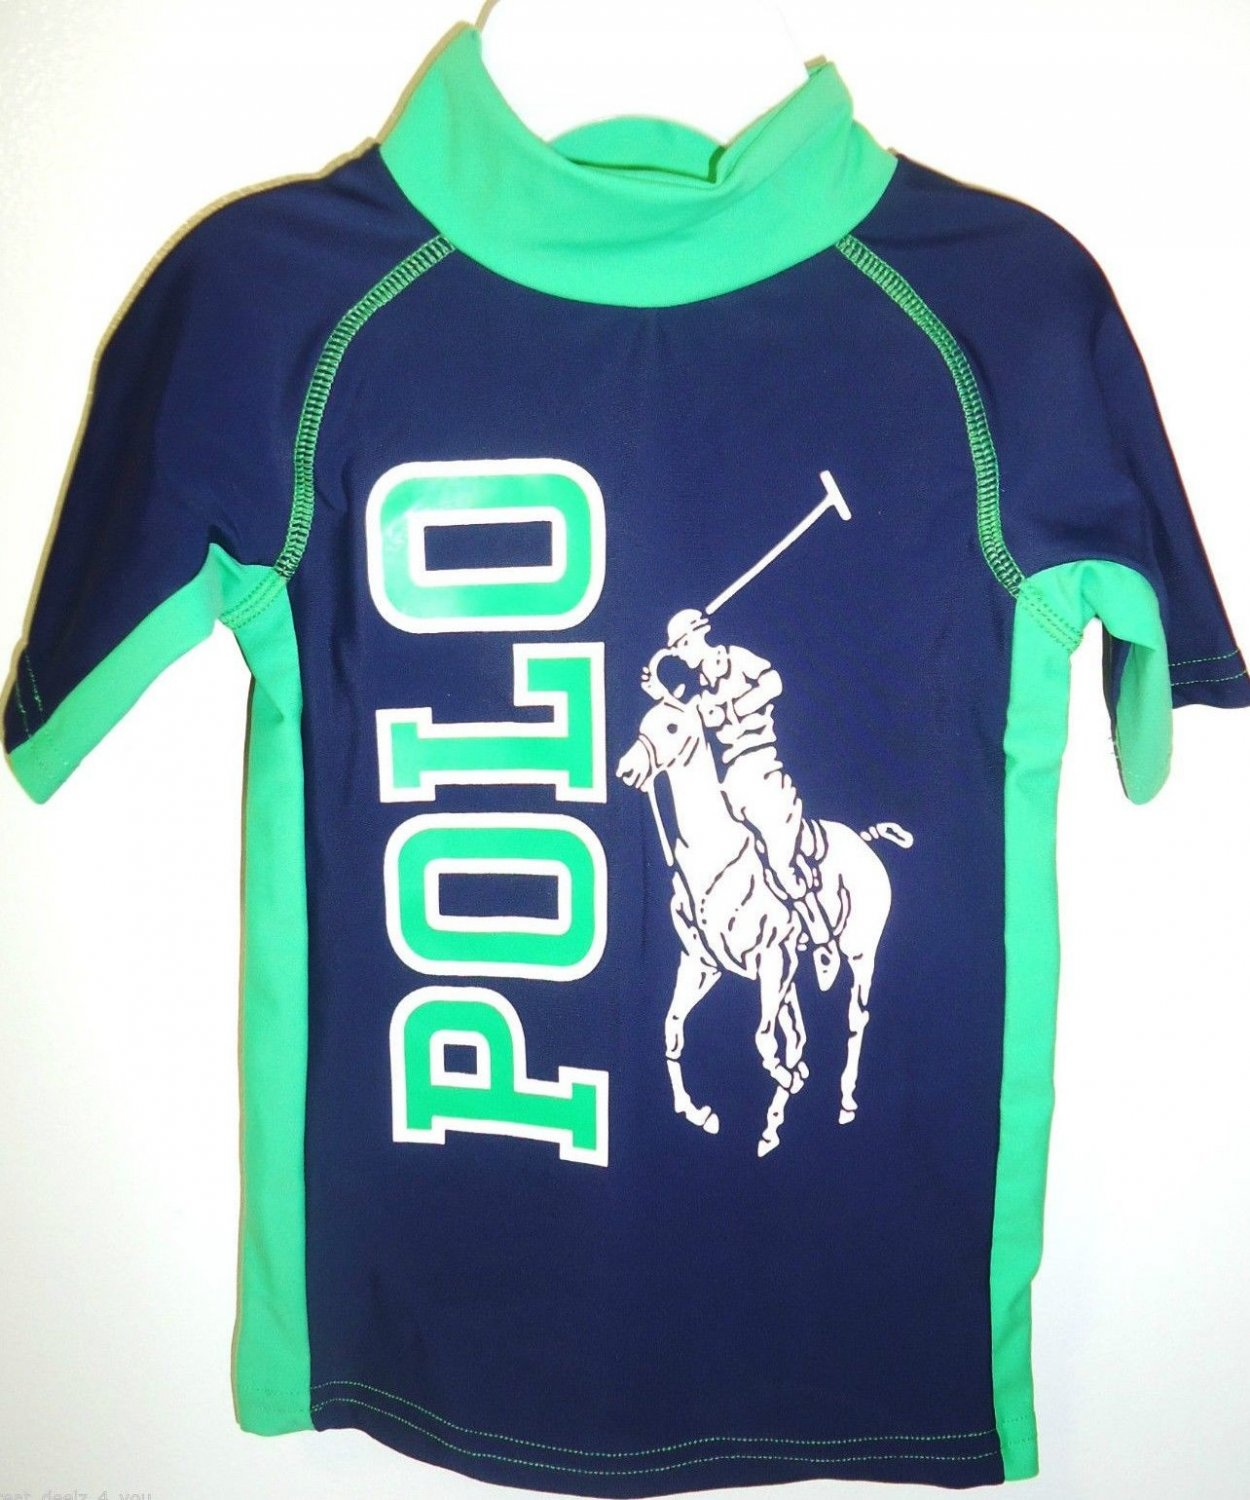 RALPH LAUREN - POLO - BOY'S - BIG PONY - BLUE - SPORT - SHIRT - 18M - BRAND NEW